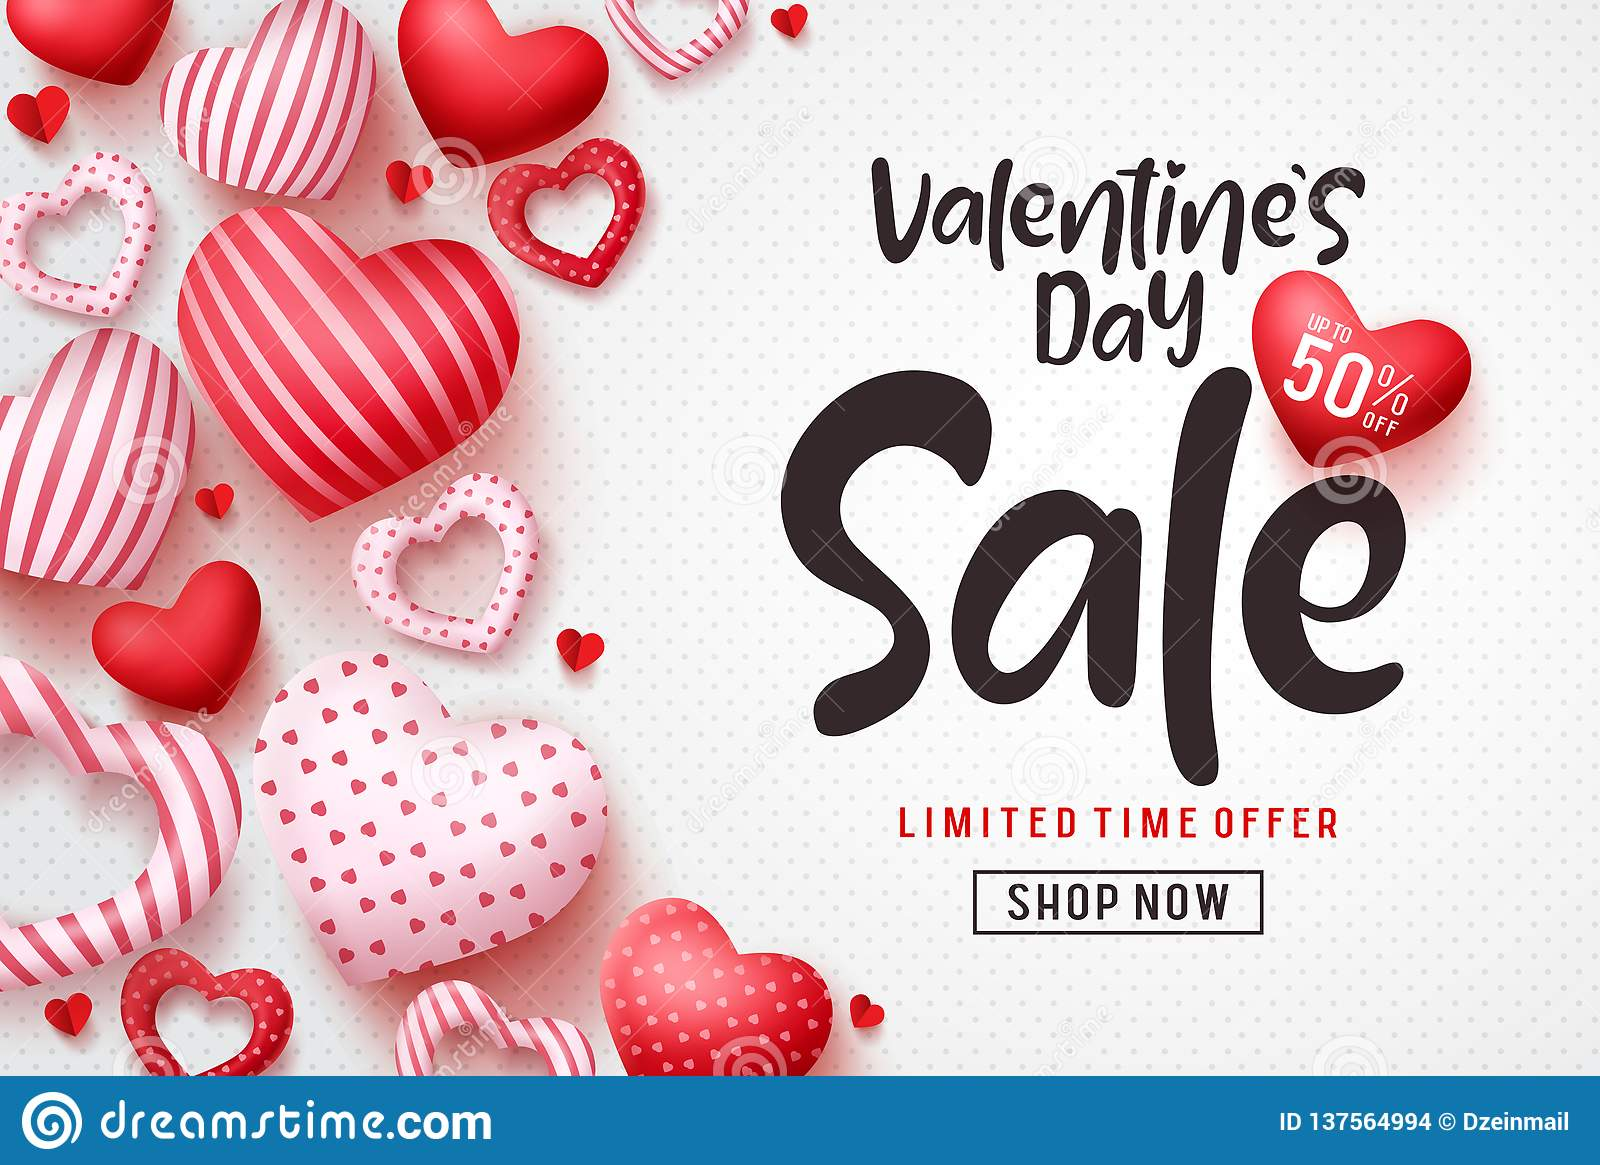 Valentines day sale vector banner template. Valentines day sale discount text